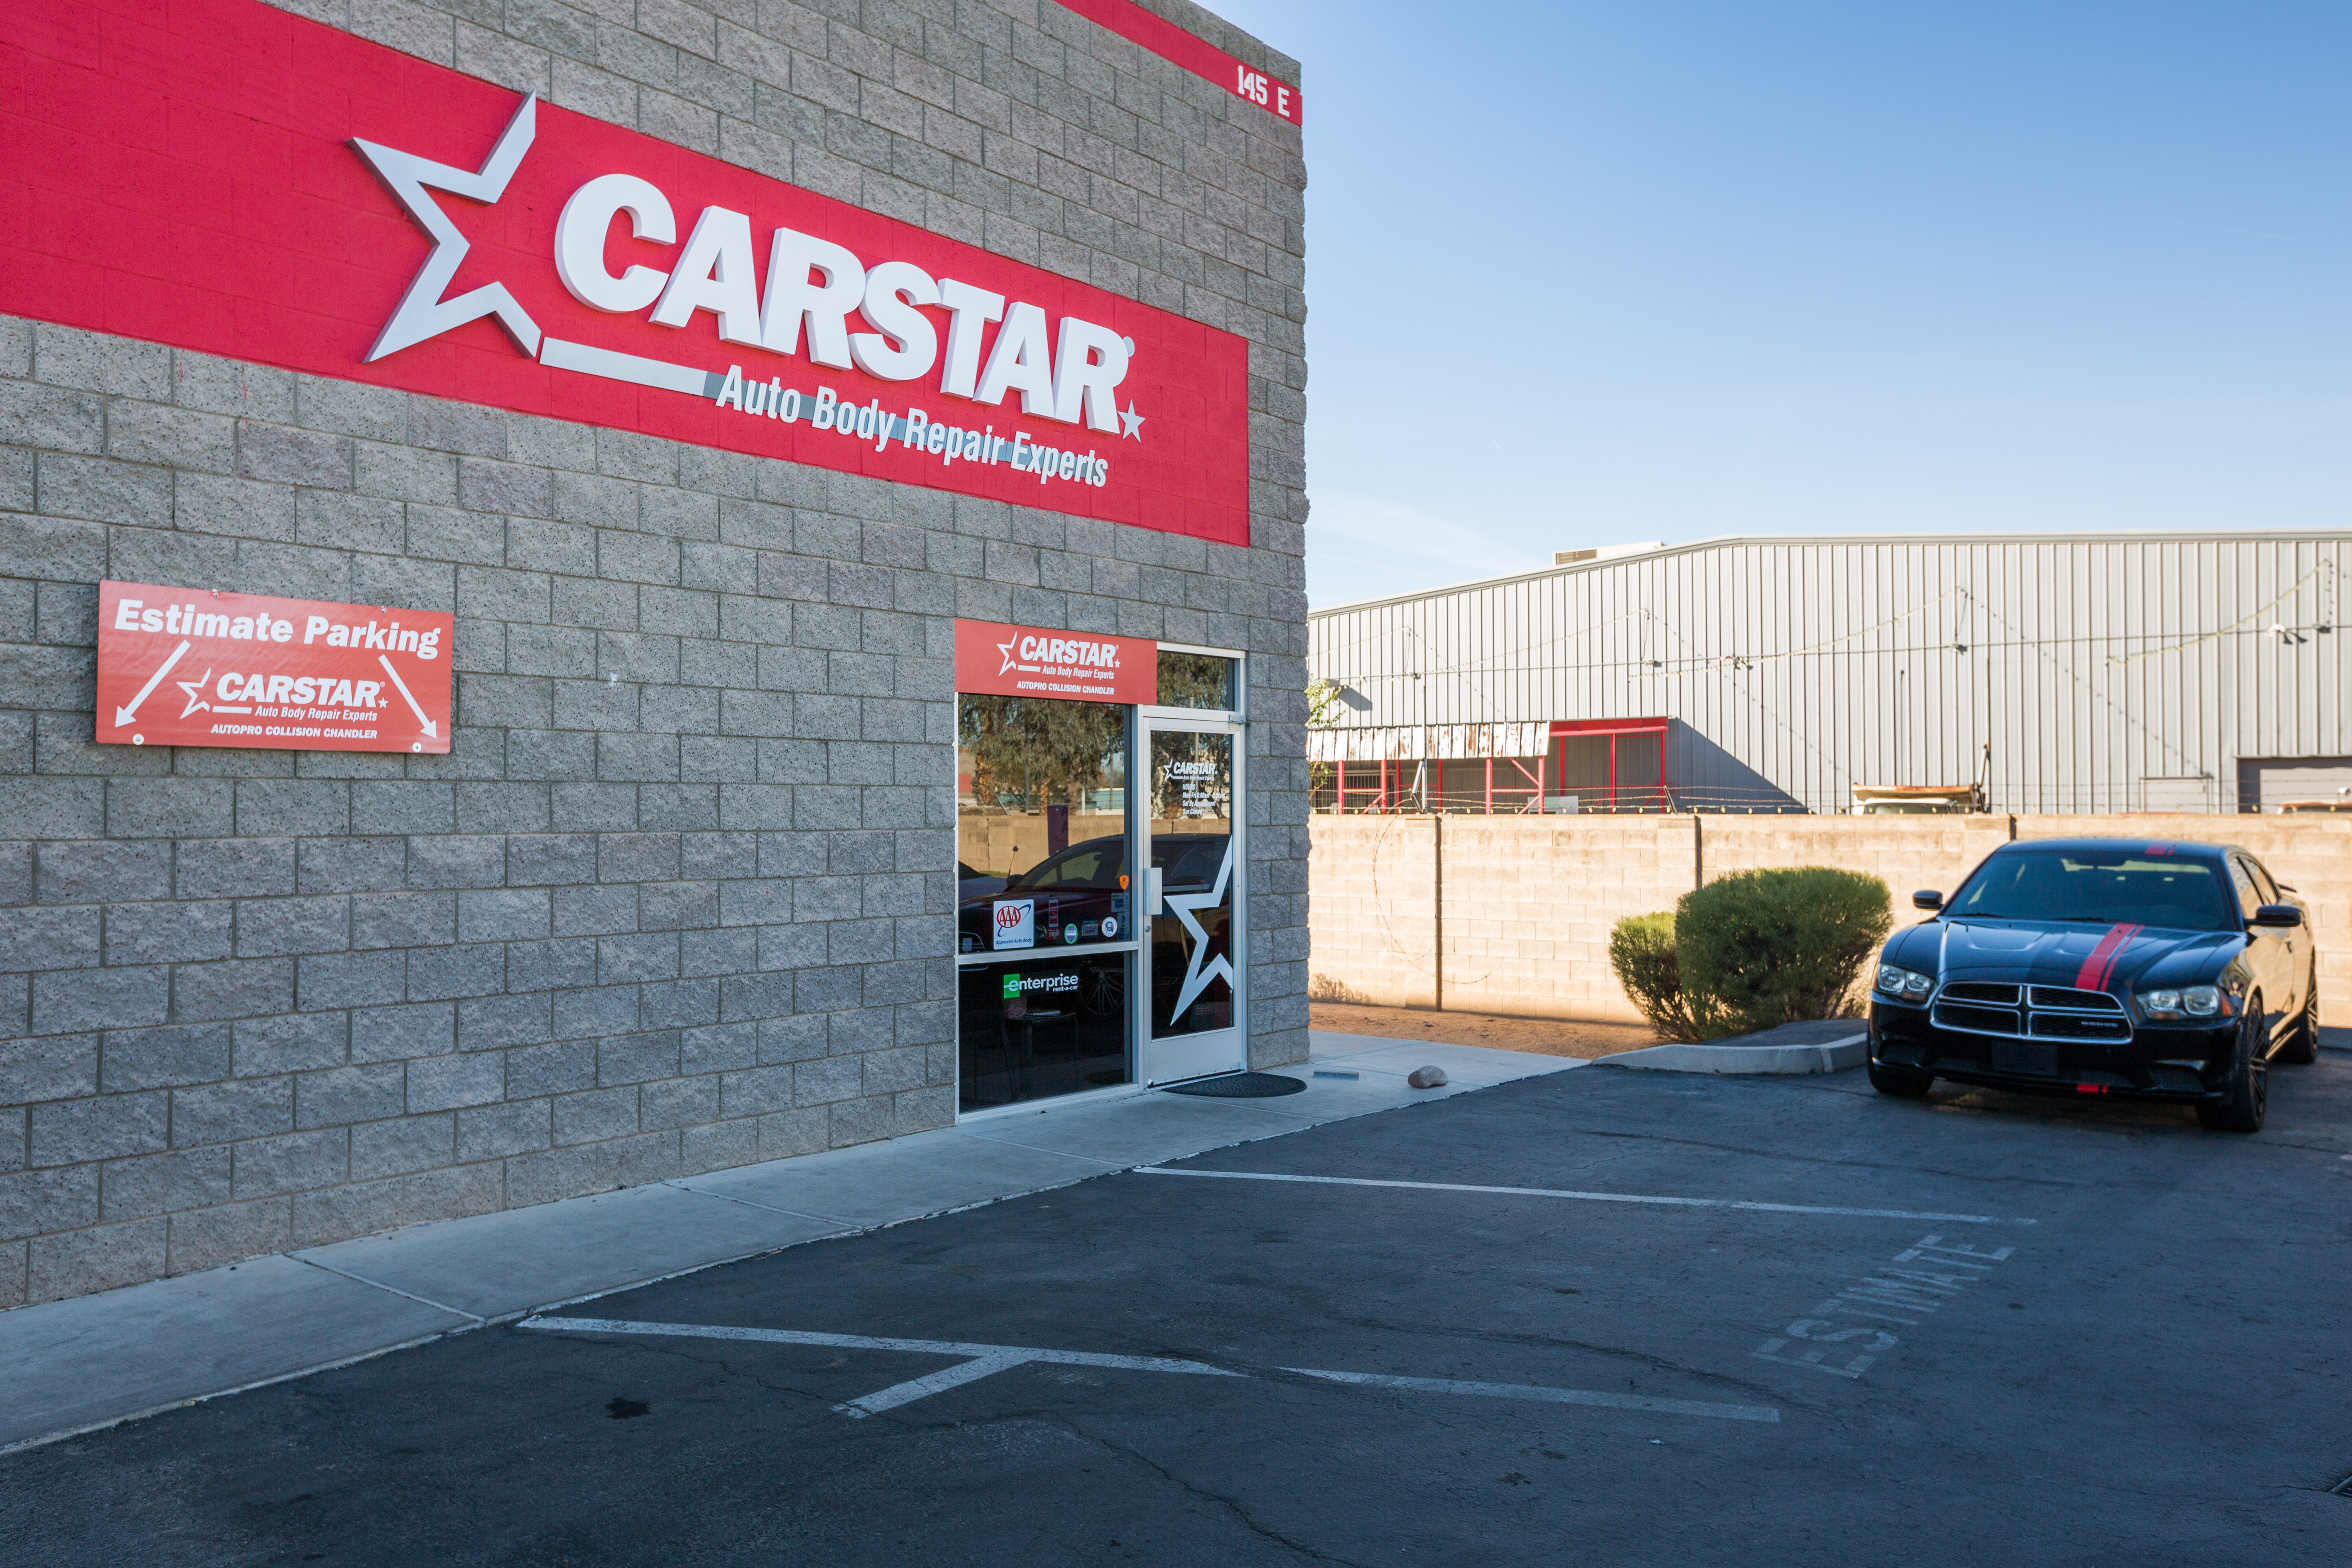 Carstar Chandler Estimate Parking